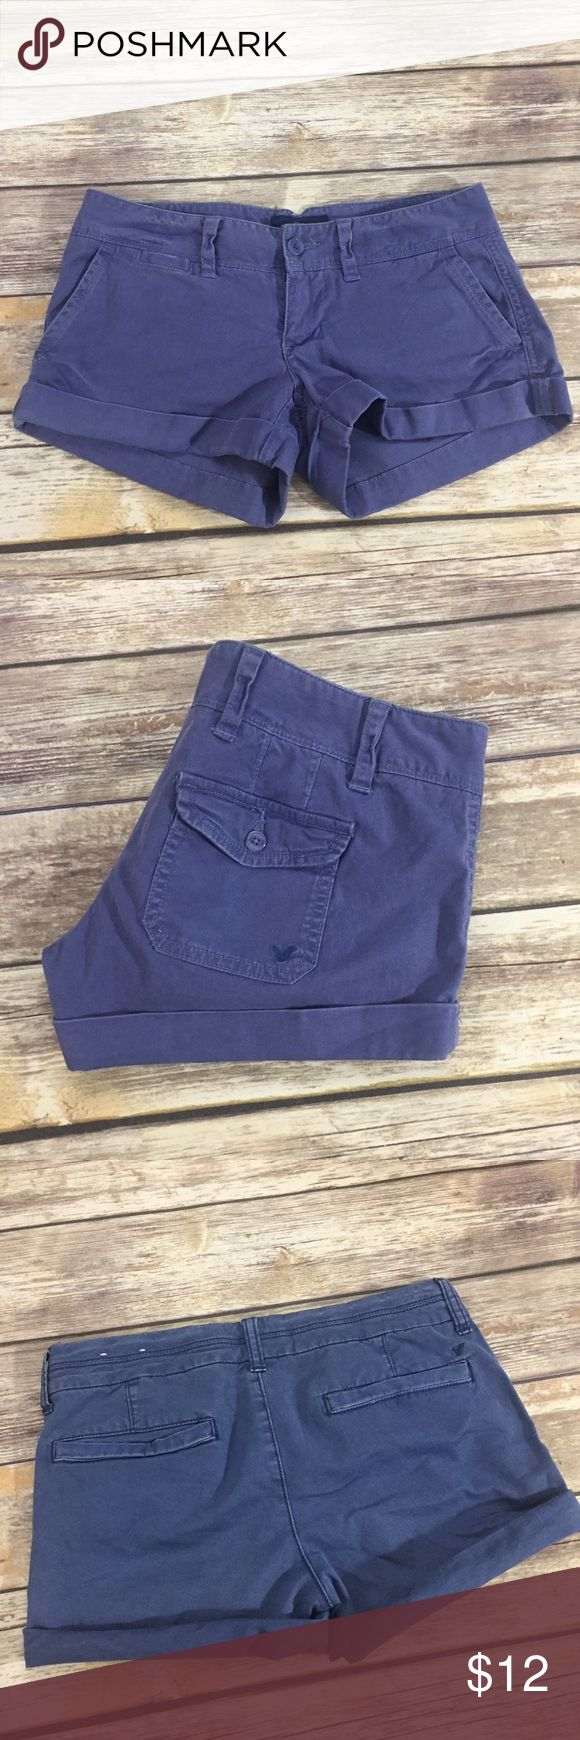 """AEO Navy Blue Chino Shorty Shorts American Eagle Outfitters navy blue Chino Shorts in size 2. Very good condition with no flaws. Made of 98% cotton and 2% spandex. Approximate 2"""" inseam. ⚓️No trades or holds. I negotiate only through the offer button. Any measurements listed are approximate since I am not a seamstress. 🚭🐩T1 American Eagle Outfitters Shorts"""